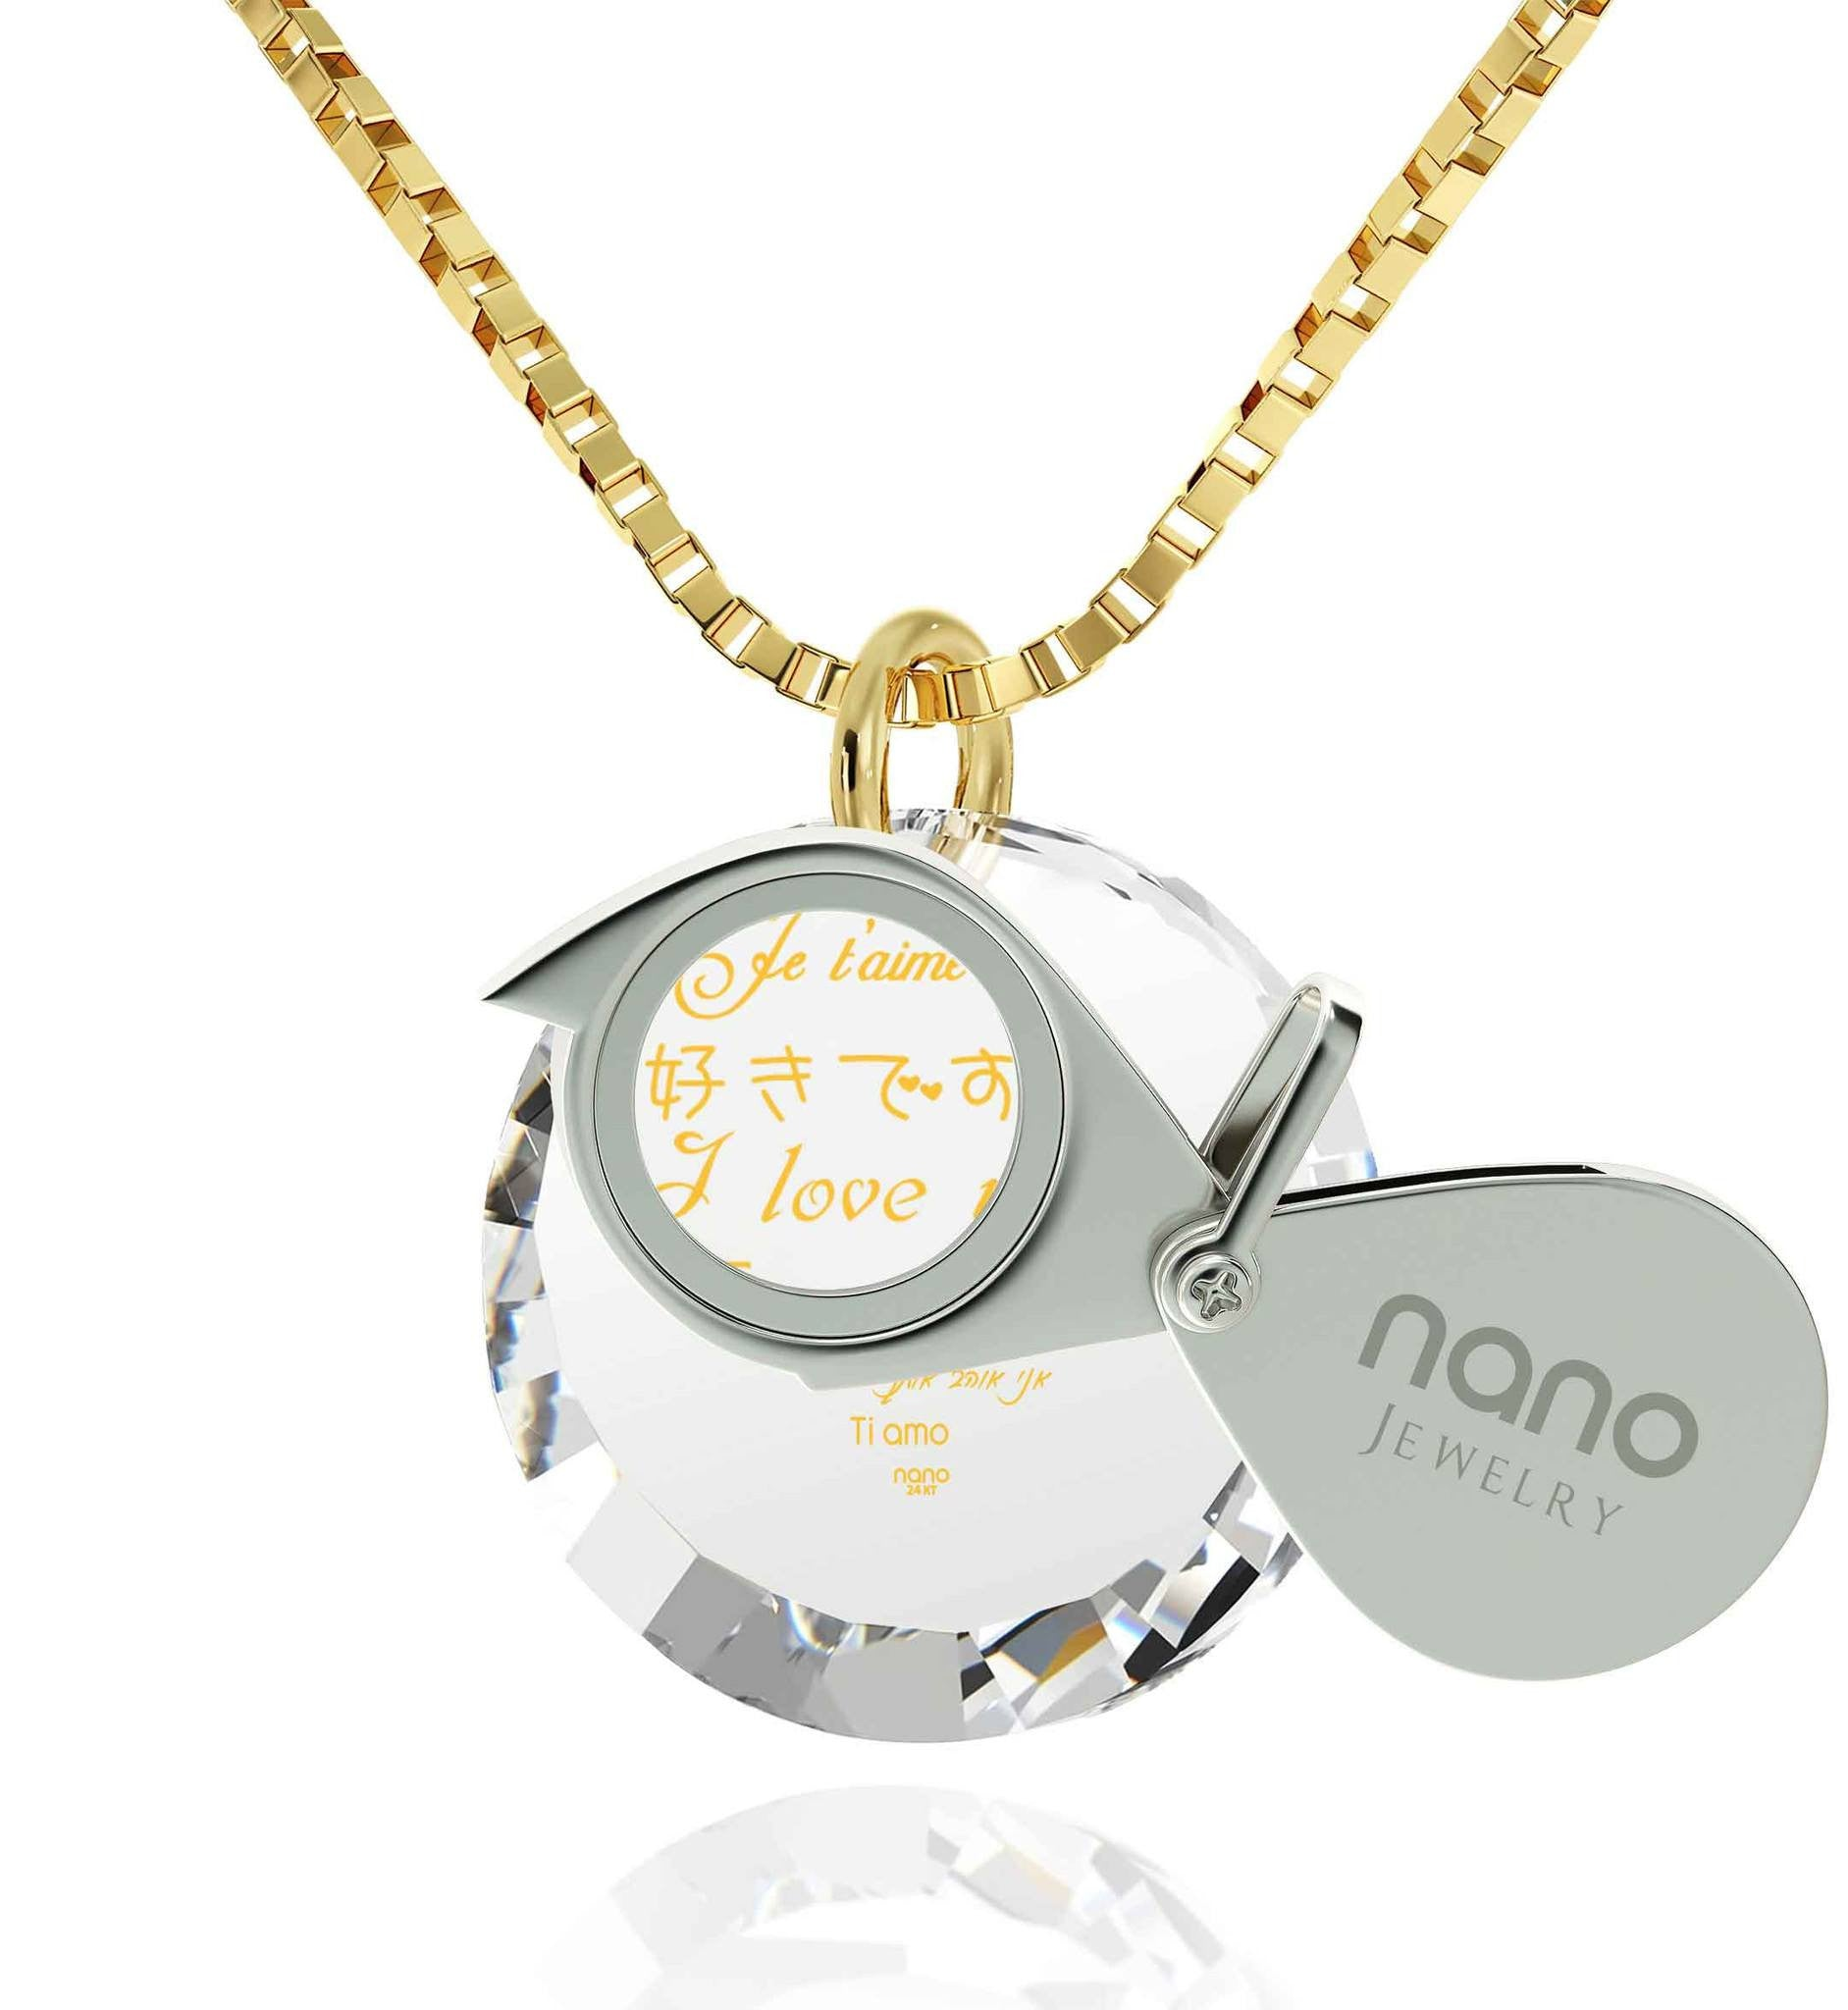 What to Get Girlfriend for Christmas, Real Gold Necklace, CZ White Round Stone, Top Gifts for Wife by Nano Jewelry